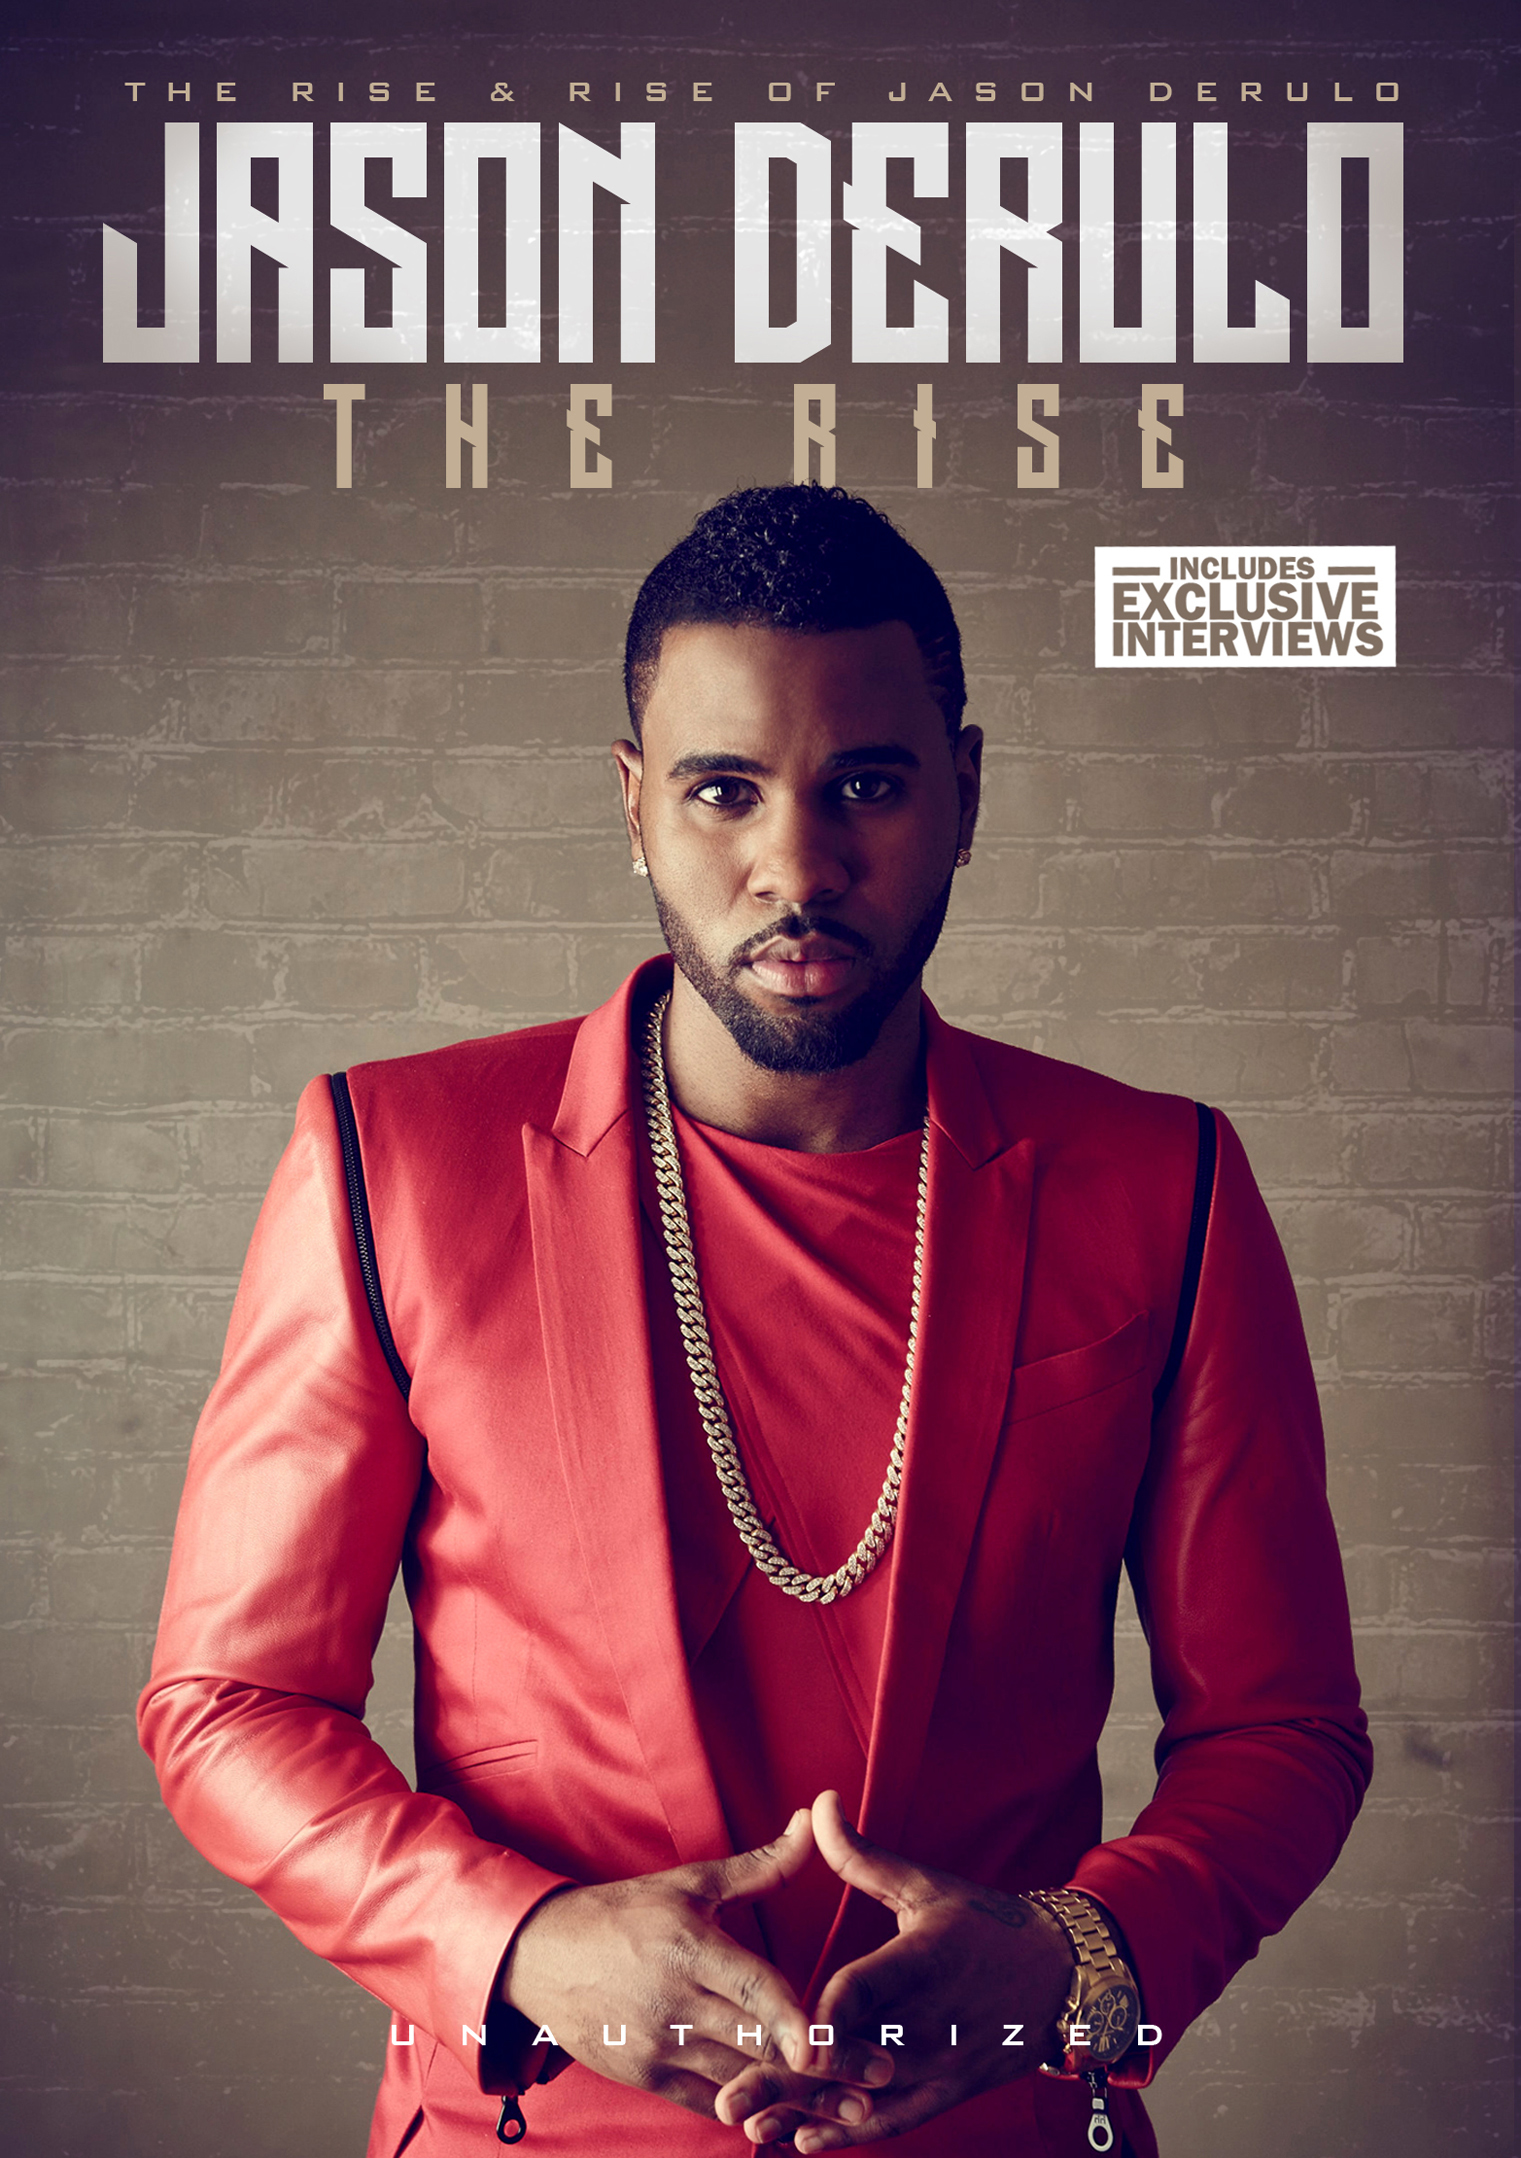 Jason Derulo: The Rise